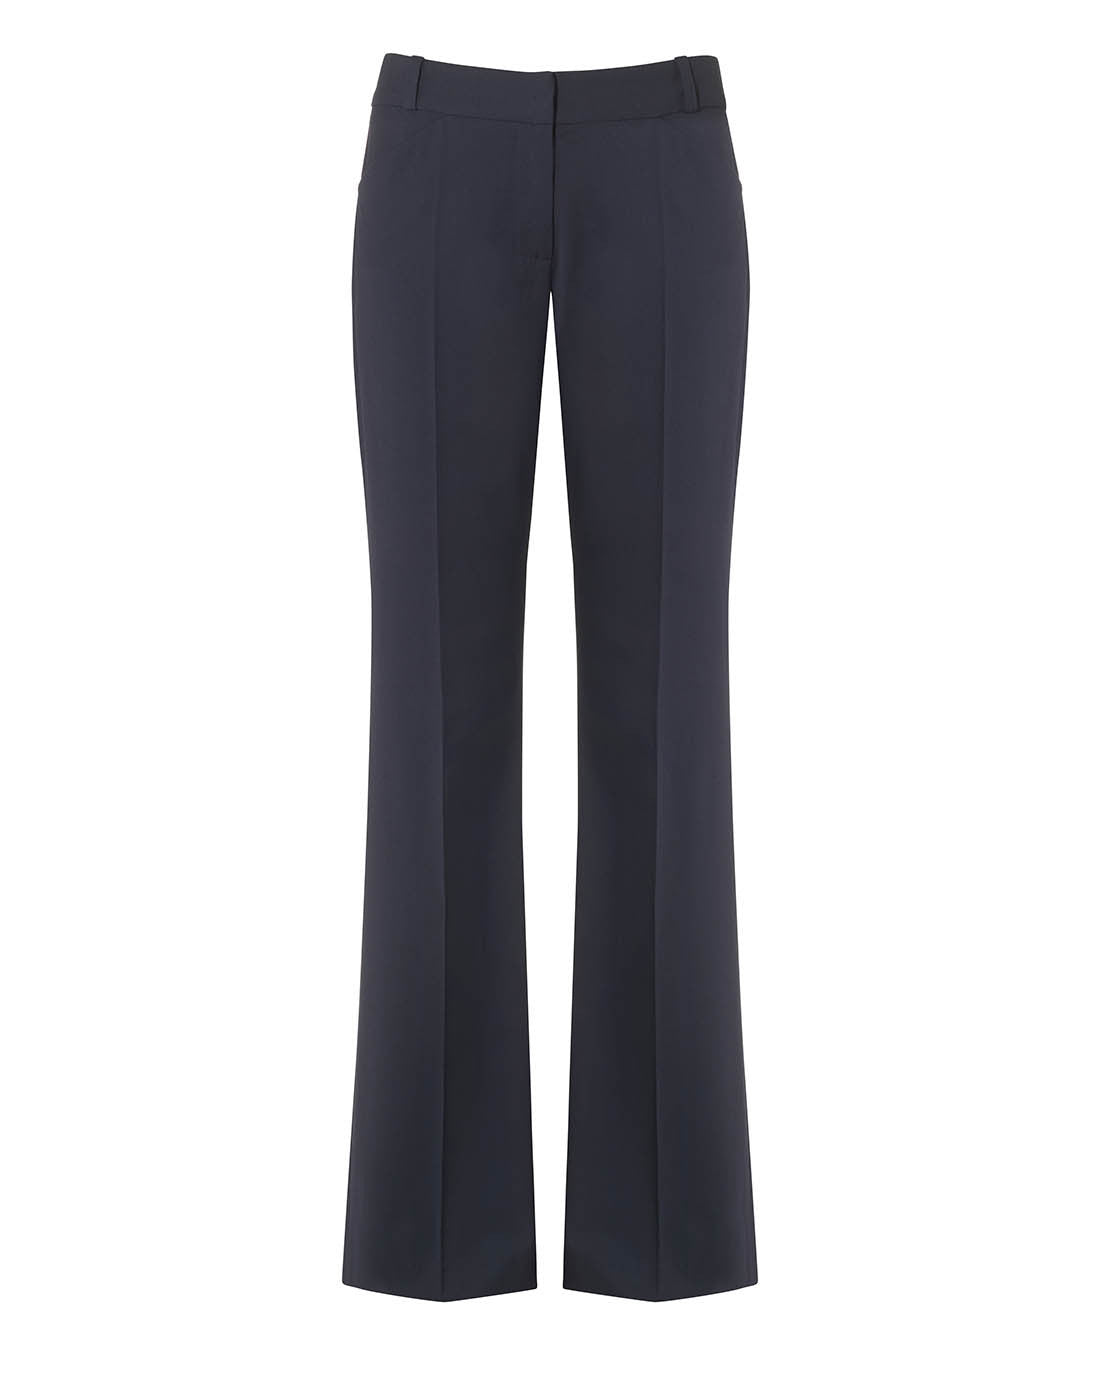 CONFIDENT TAILORED BOOTCUT SUIT TROUSER DARK NAVY